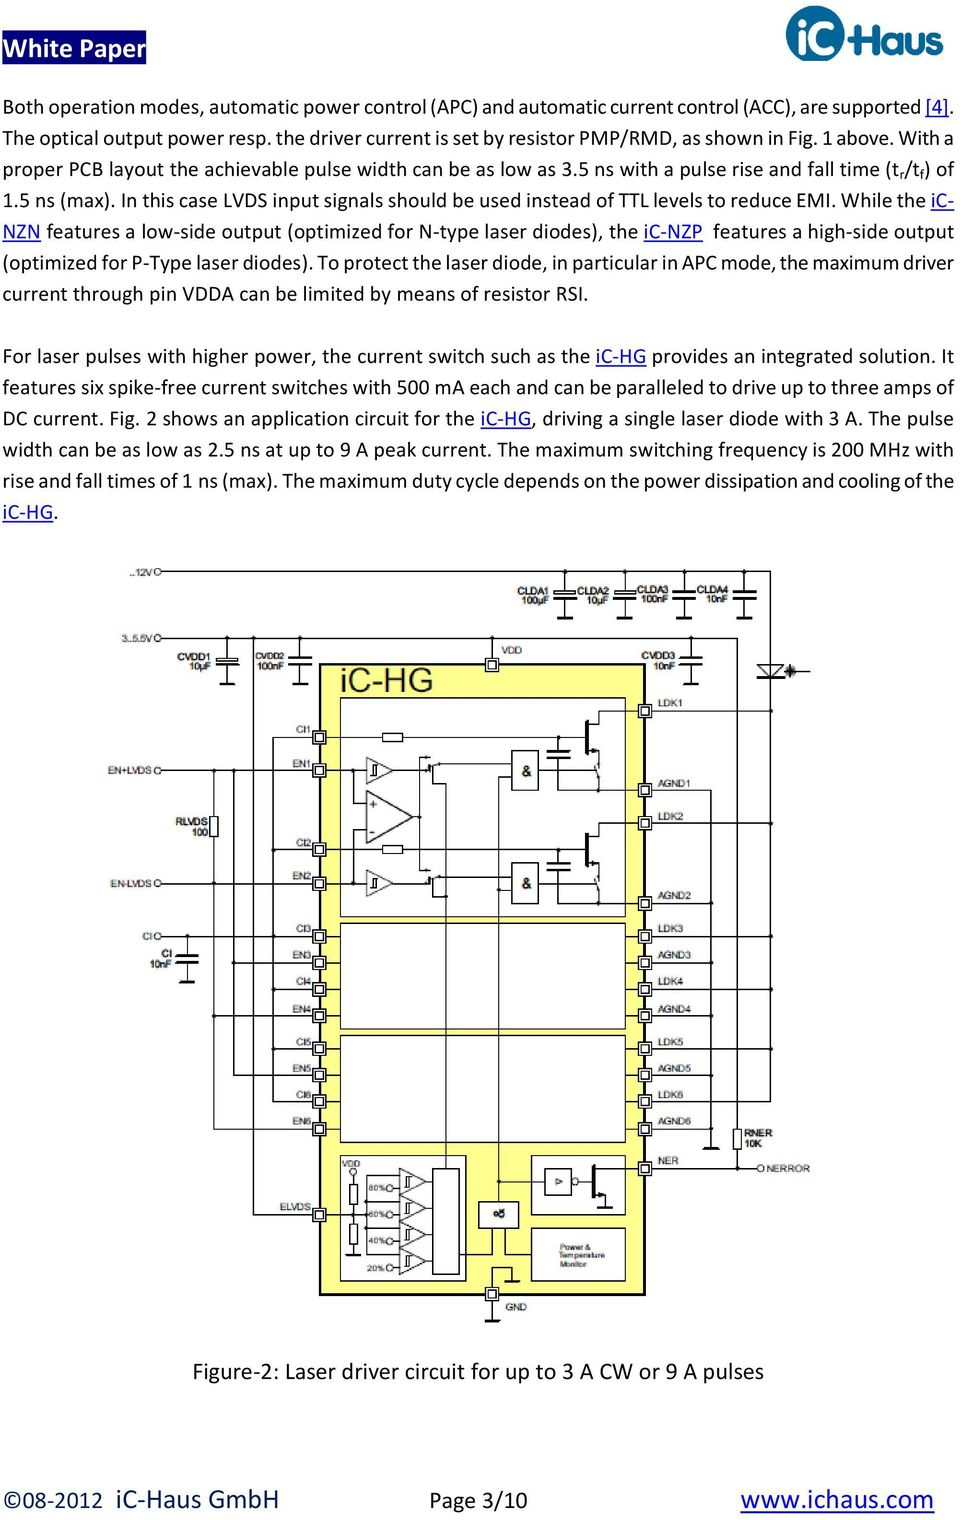 Design And Test Of Fast Laser Driver Circuits Pdf Free Project Circuit Diagram Diode 5 Ns Max In This Case Lvds Input Signals Should Be Used Instead